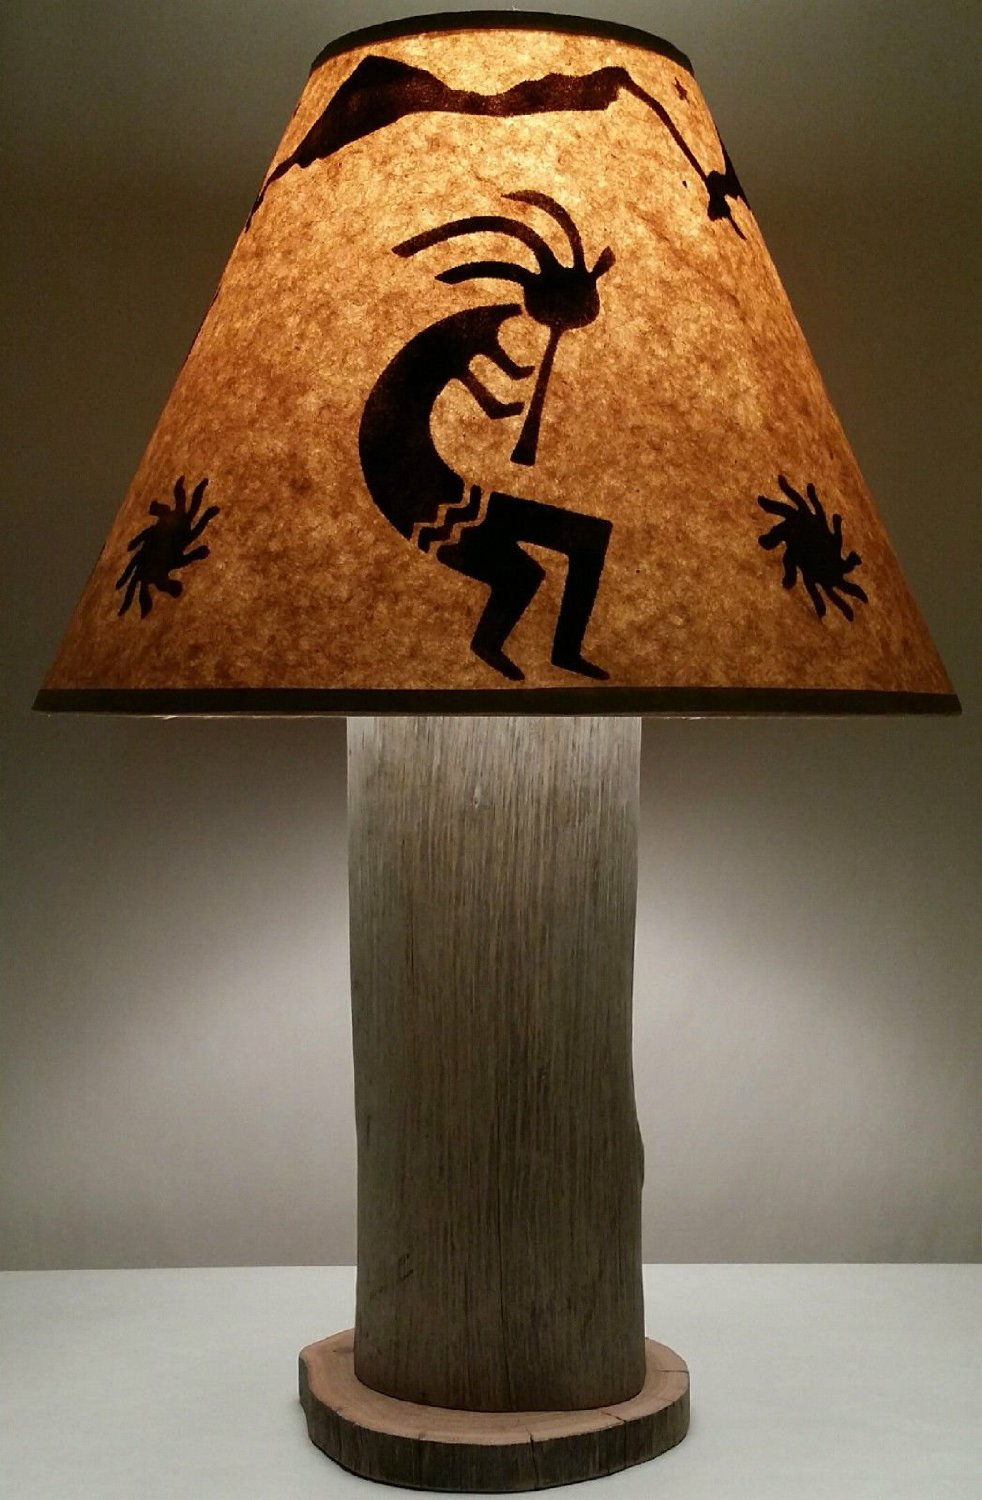 Southwestern native american lamps lighting from earth sky navajo kokopelli native american indian southwestern table lamp aloadofball Image collections